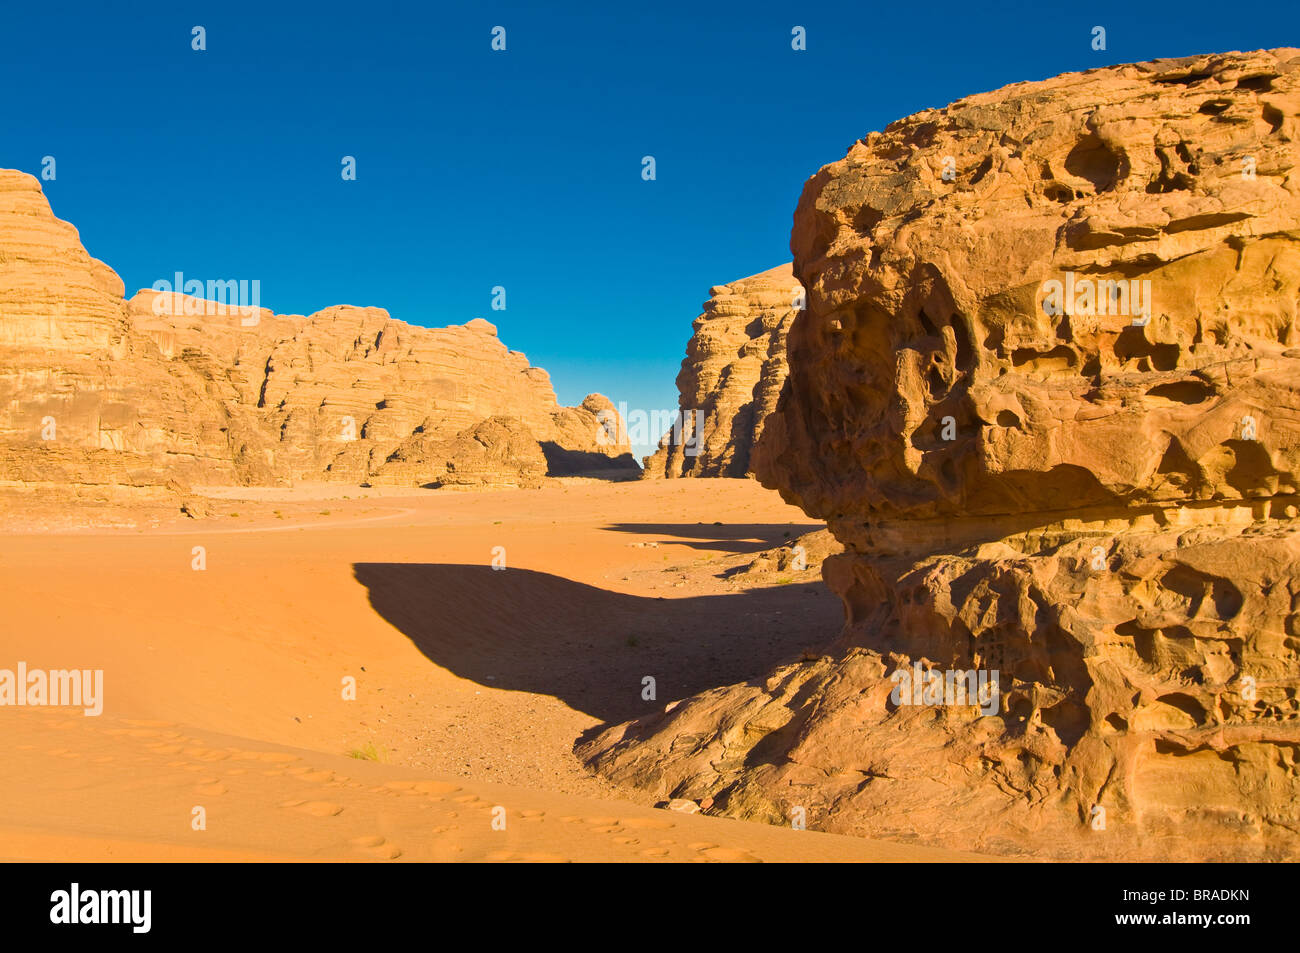 The stunning desert scenery of Wadi Rum, Jordan, Middle East Stock Photo